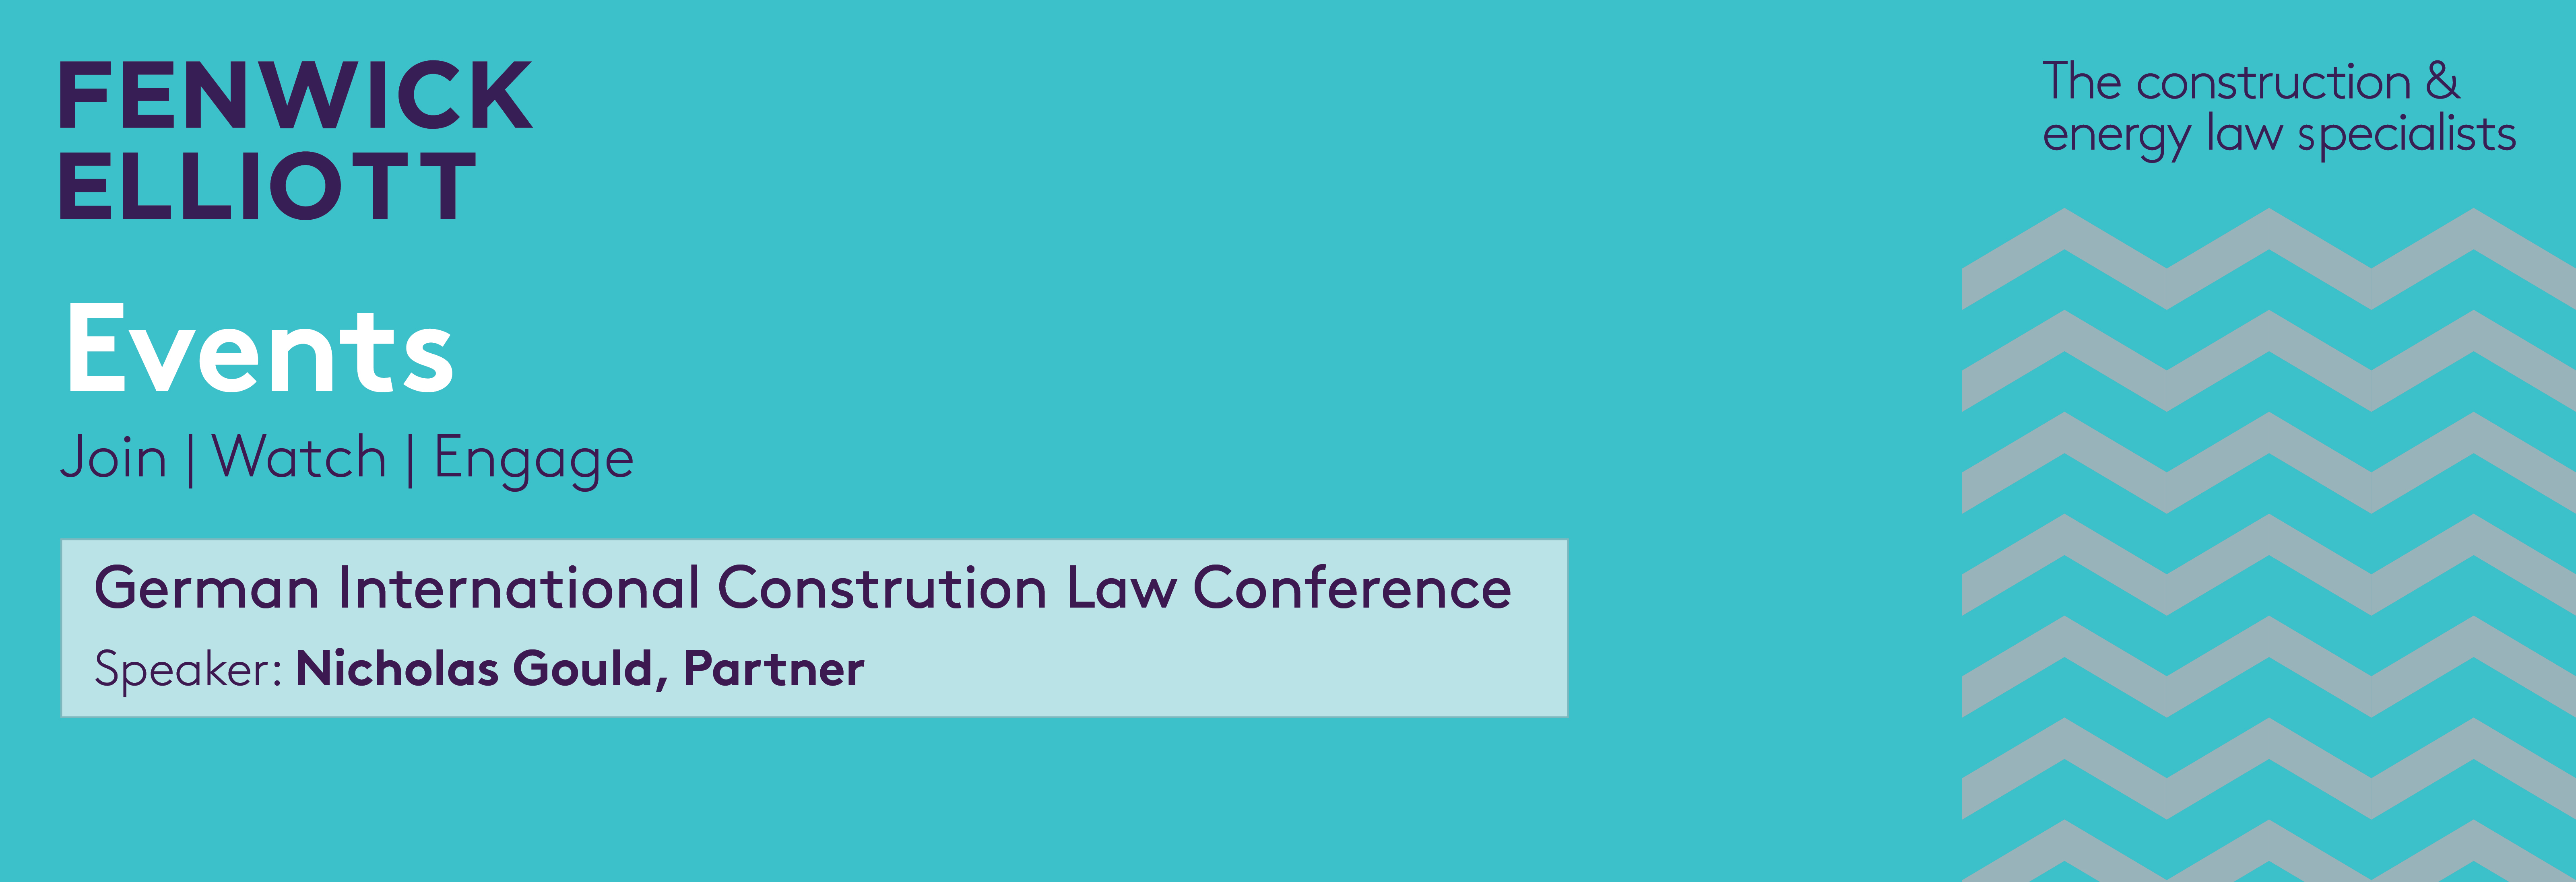 German International Construction Law Conference banner